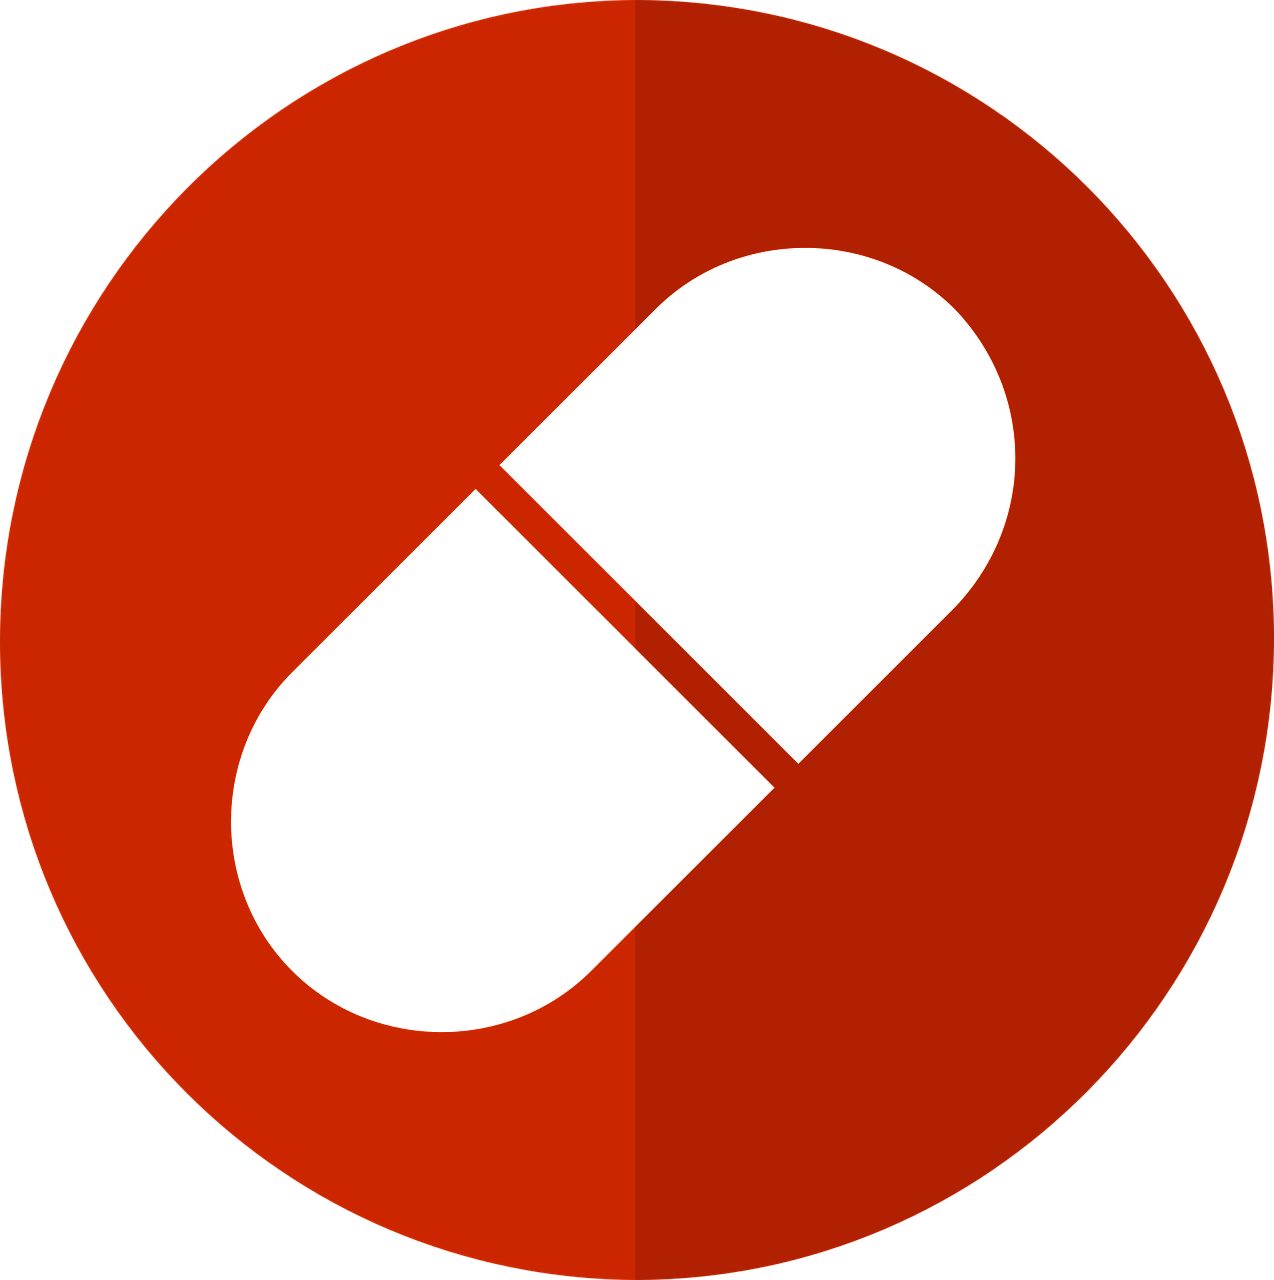 drug-icon-2316244_1280.png